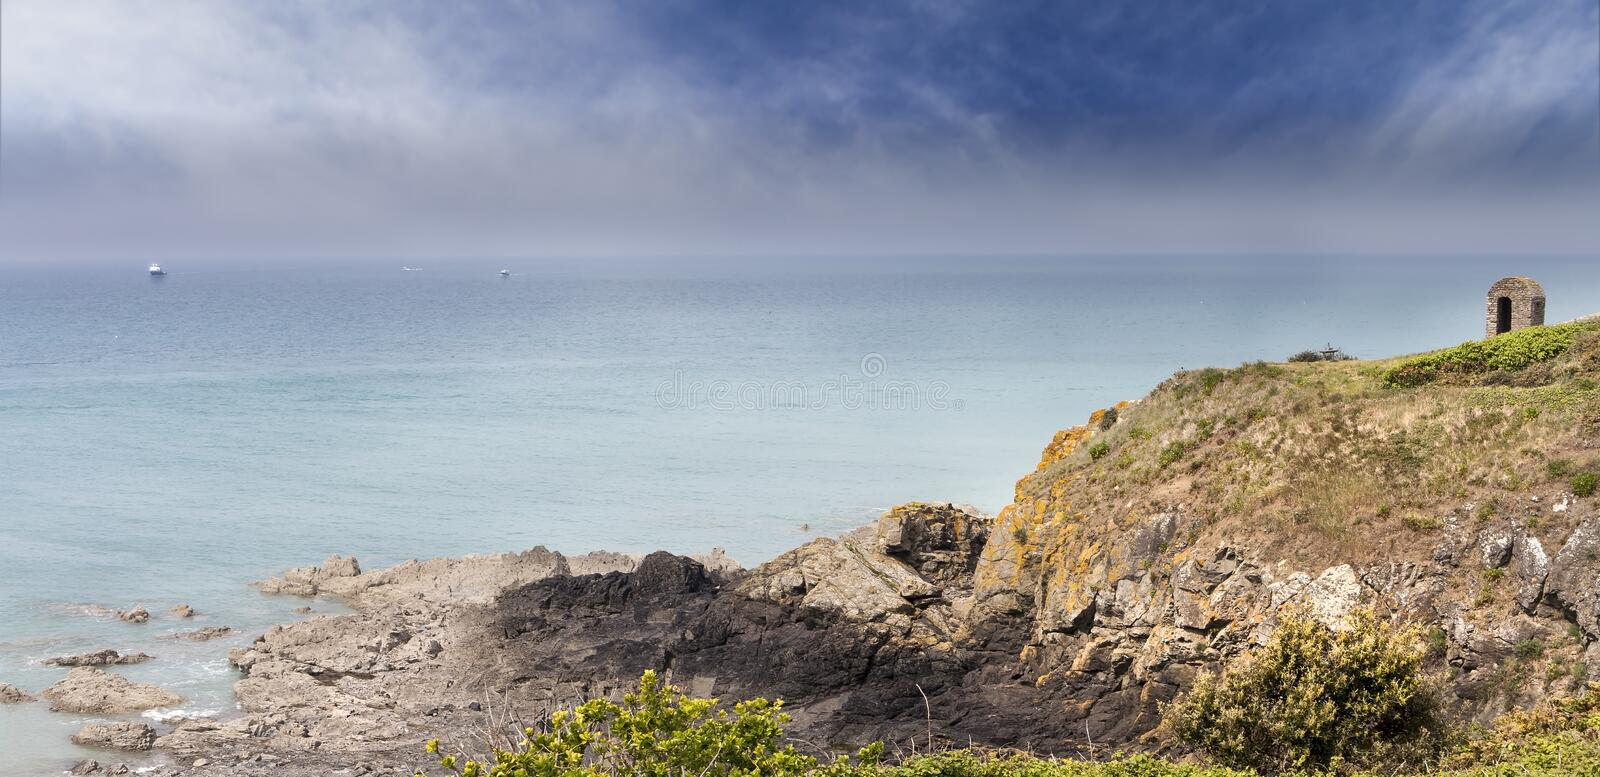 Ruins of a small medieval watchtower coastline near the Atlantic royalty free stock images